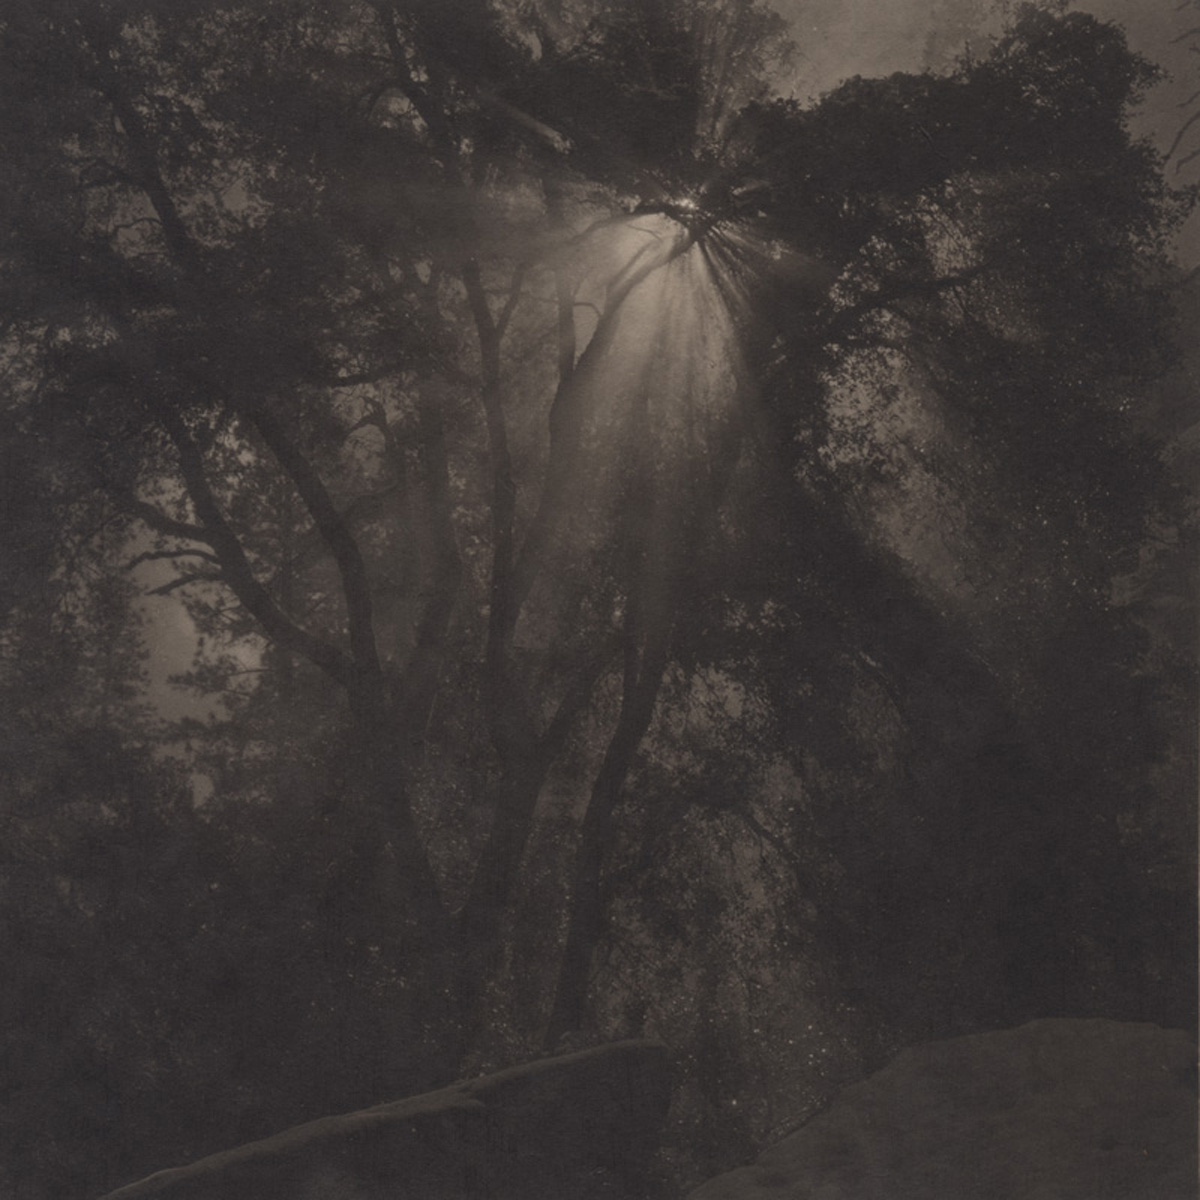 Takeshi Shikama Silent Respiration of Forests - Yosemite #2